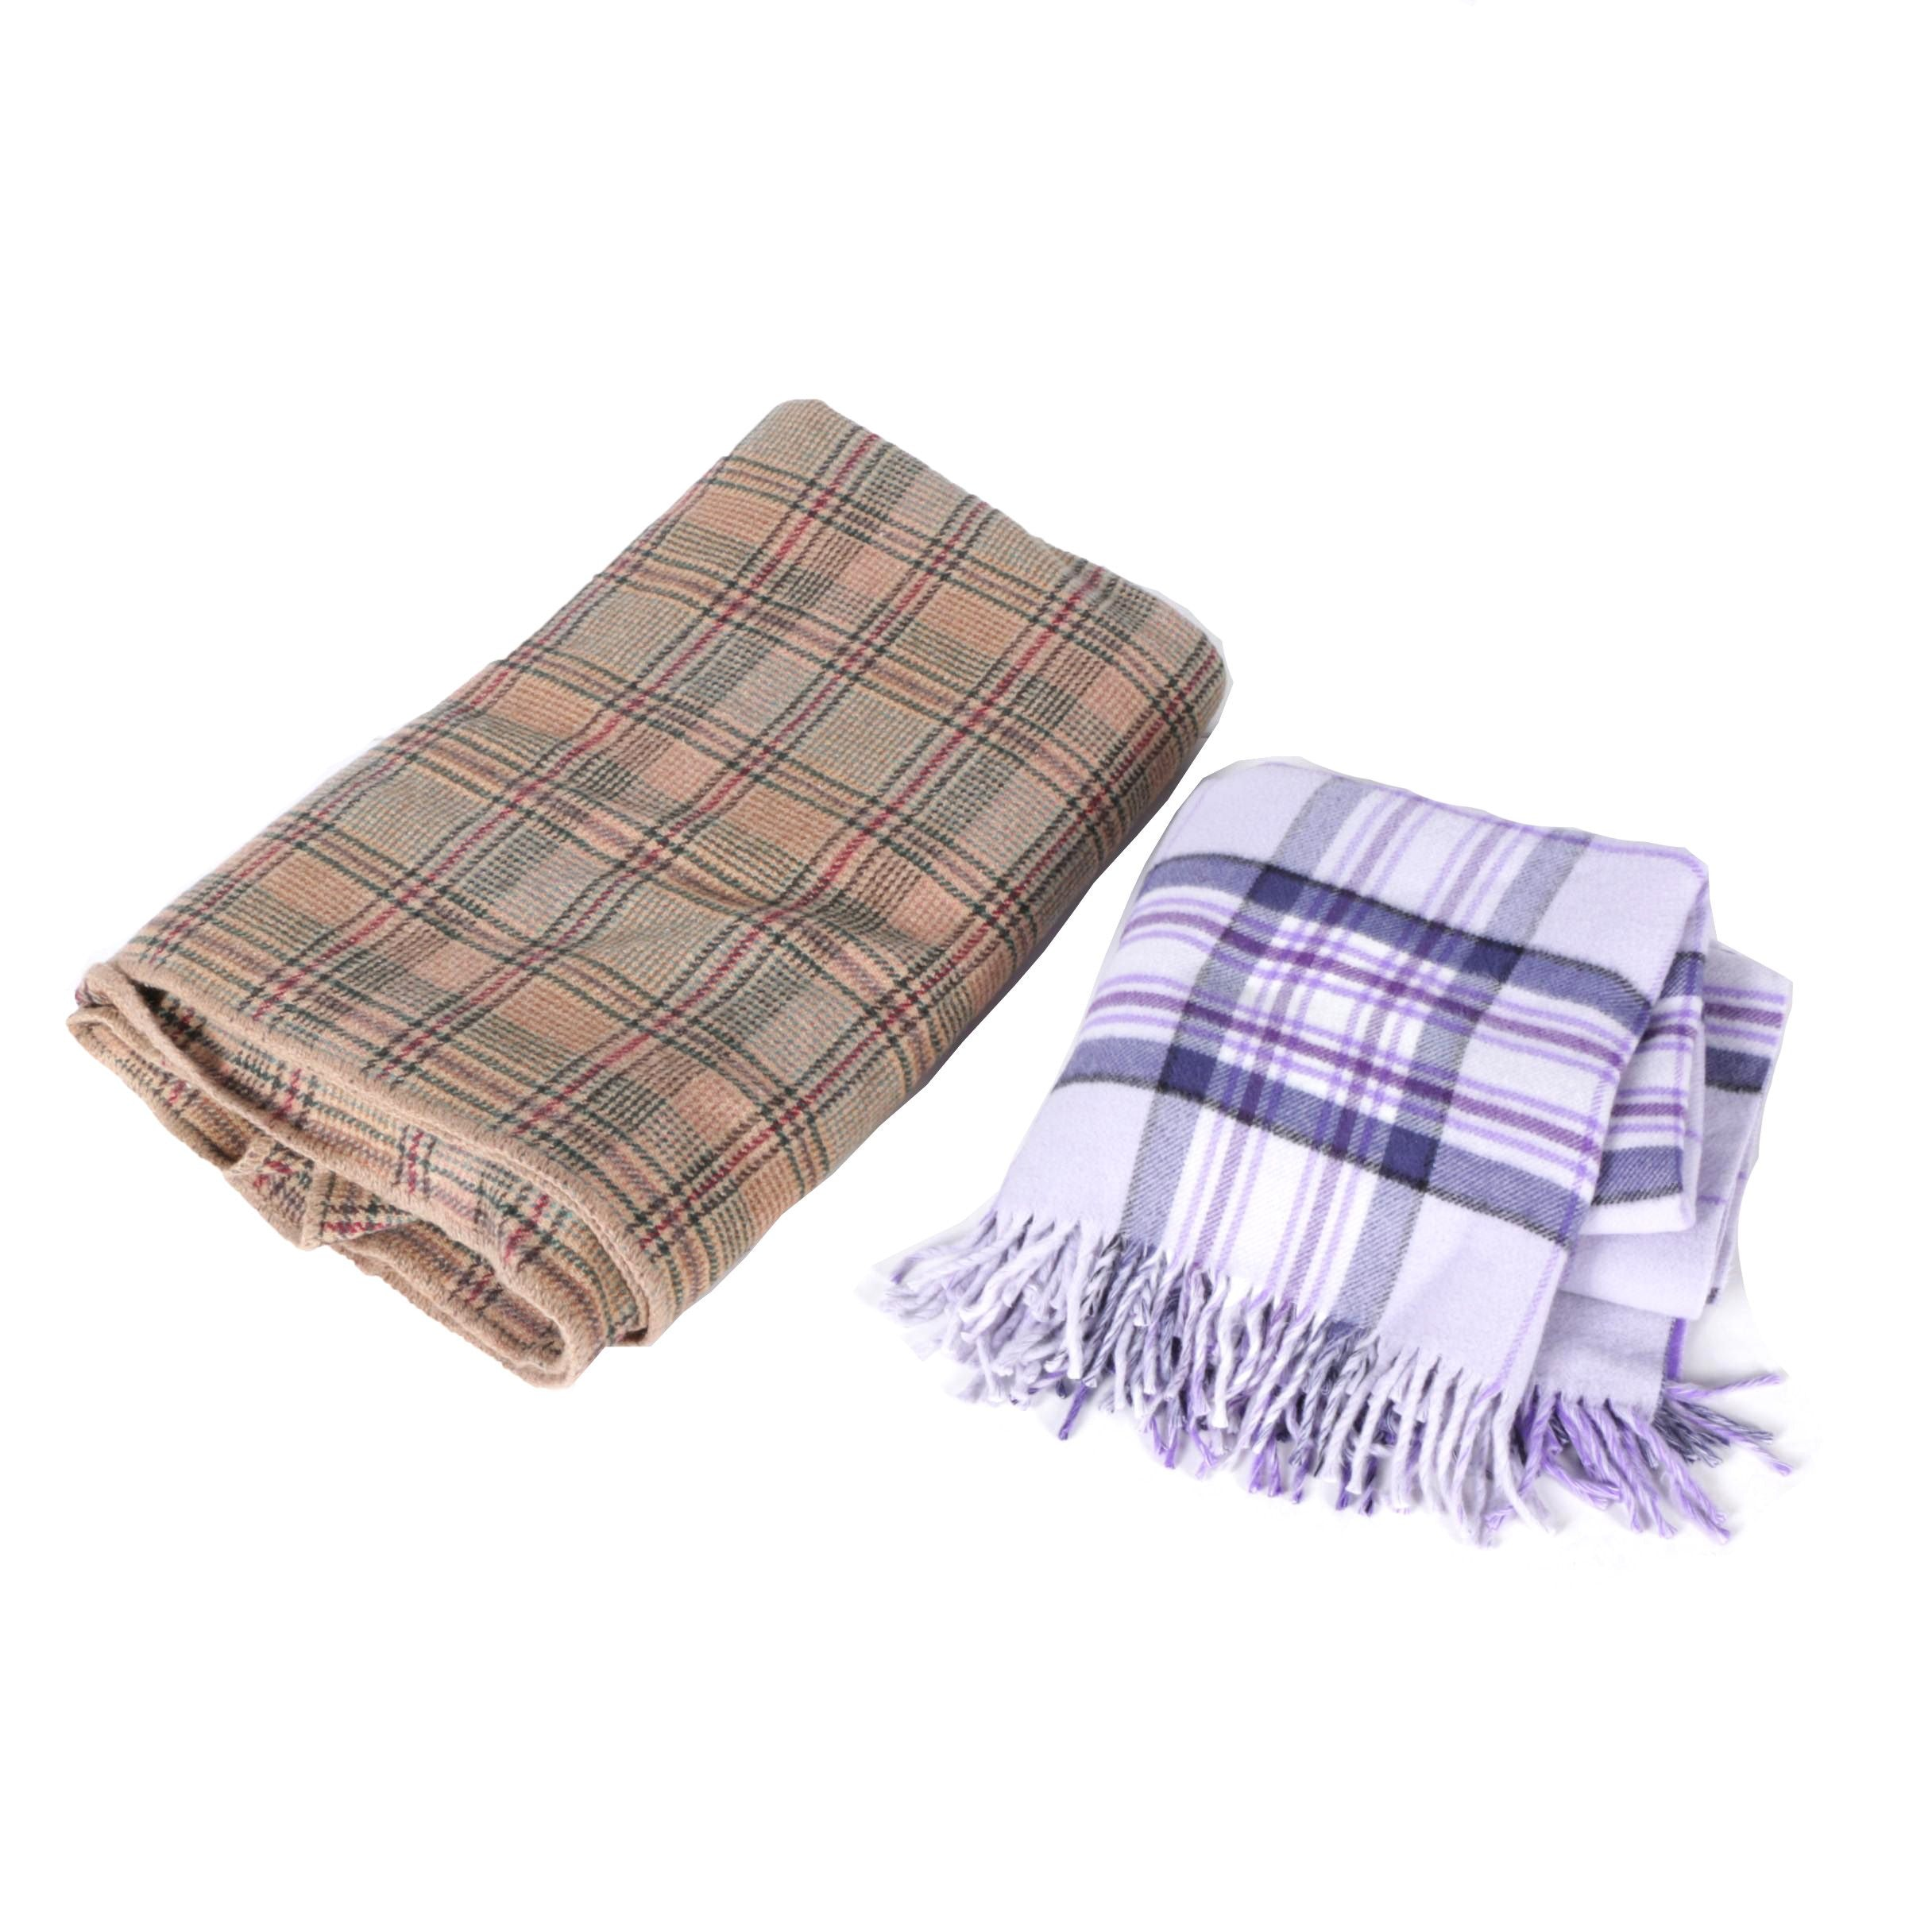 Ralph Lauren and Olmetto Plaid Blankets